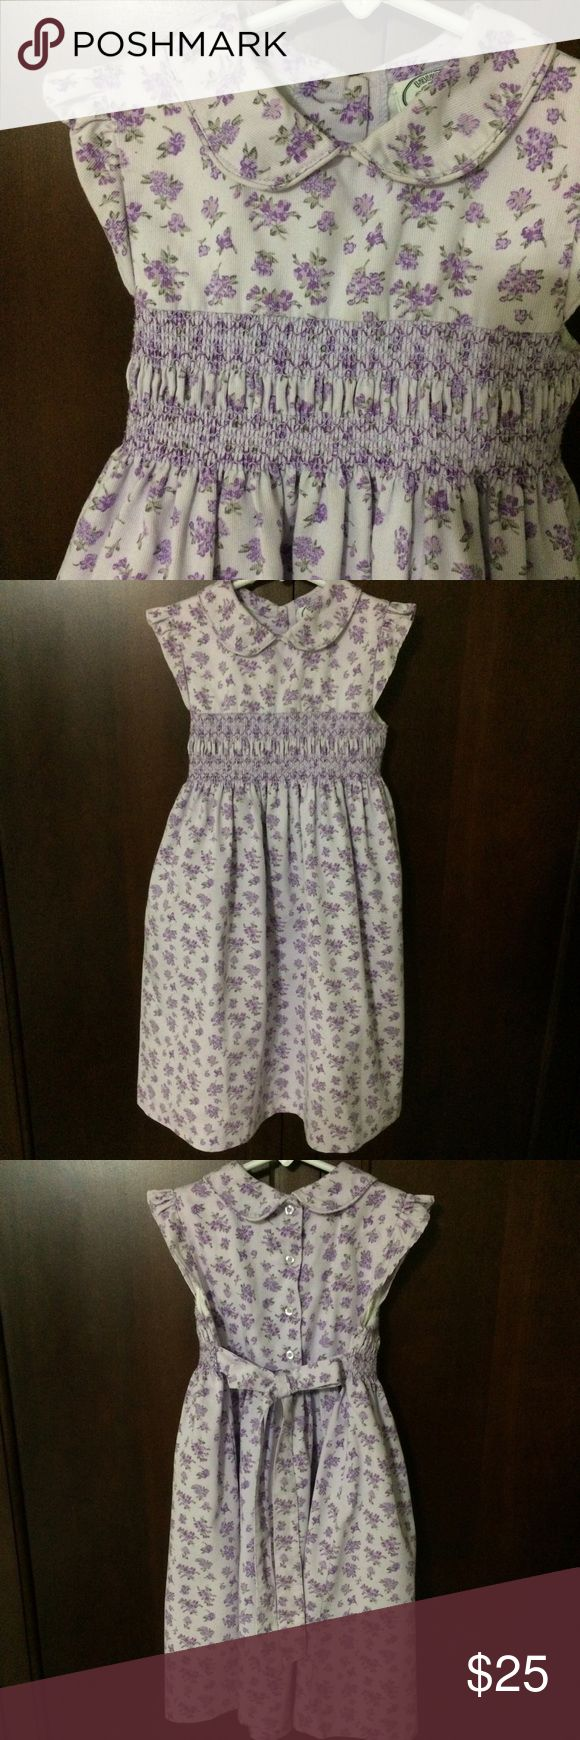 """✨ SALE ✨ Girls Laura Ashley dress with Smocking Beautiful thick fabric with a collar and little ruffle as the sleeve. The Smocking though of course is my favorite  almost 28.25"""" long from shoulder to hem..bundle 2 and save 15% ⚡️ Laura Ashley Dresses"""